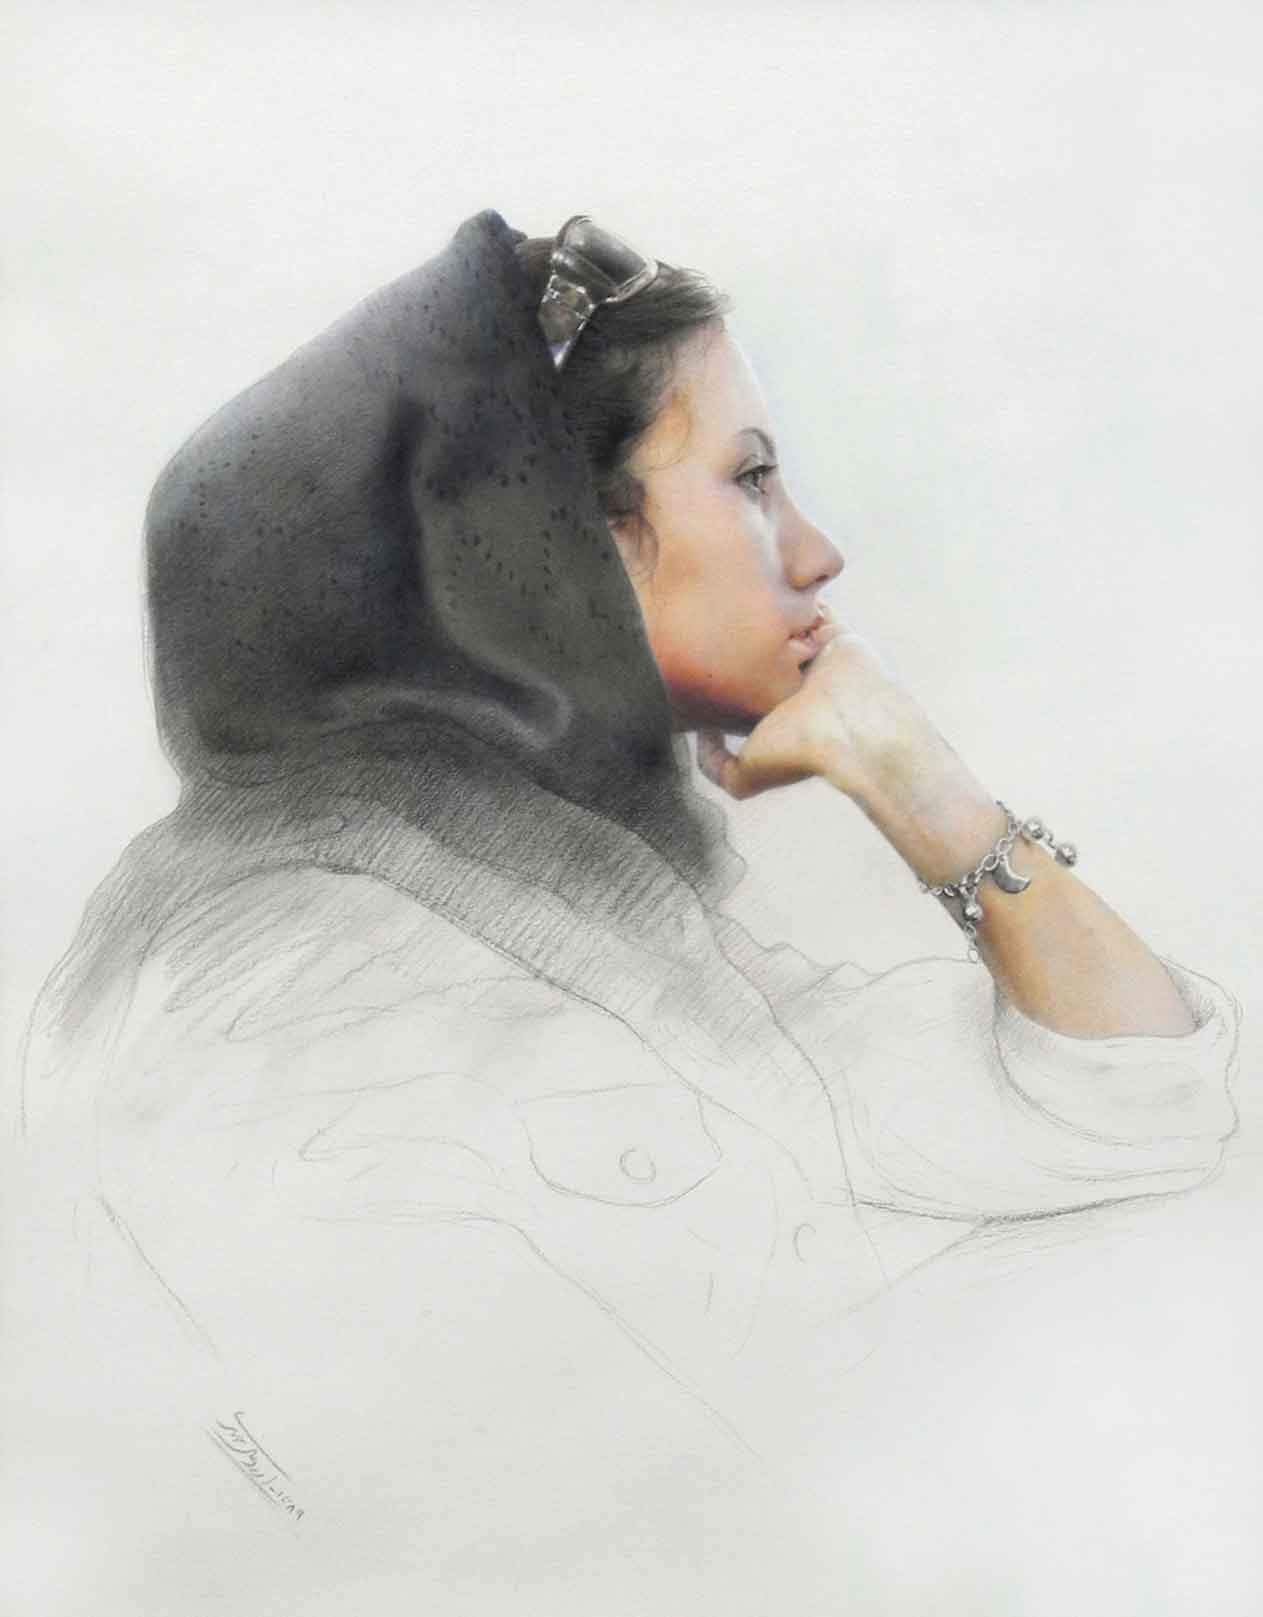 Expectation, Colourpencil on Paper, 55x 65, 2010